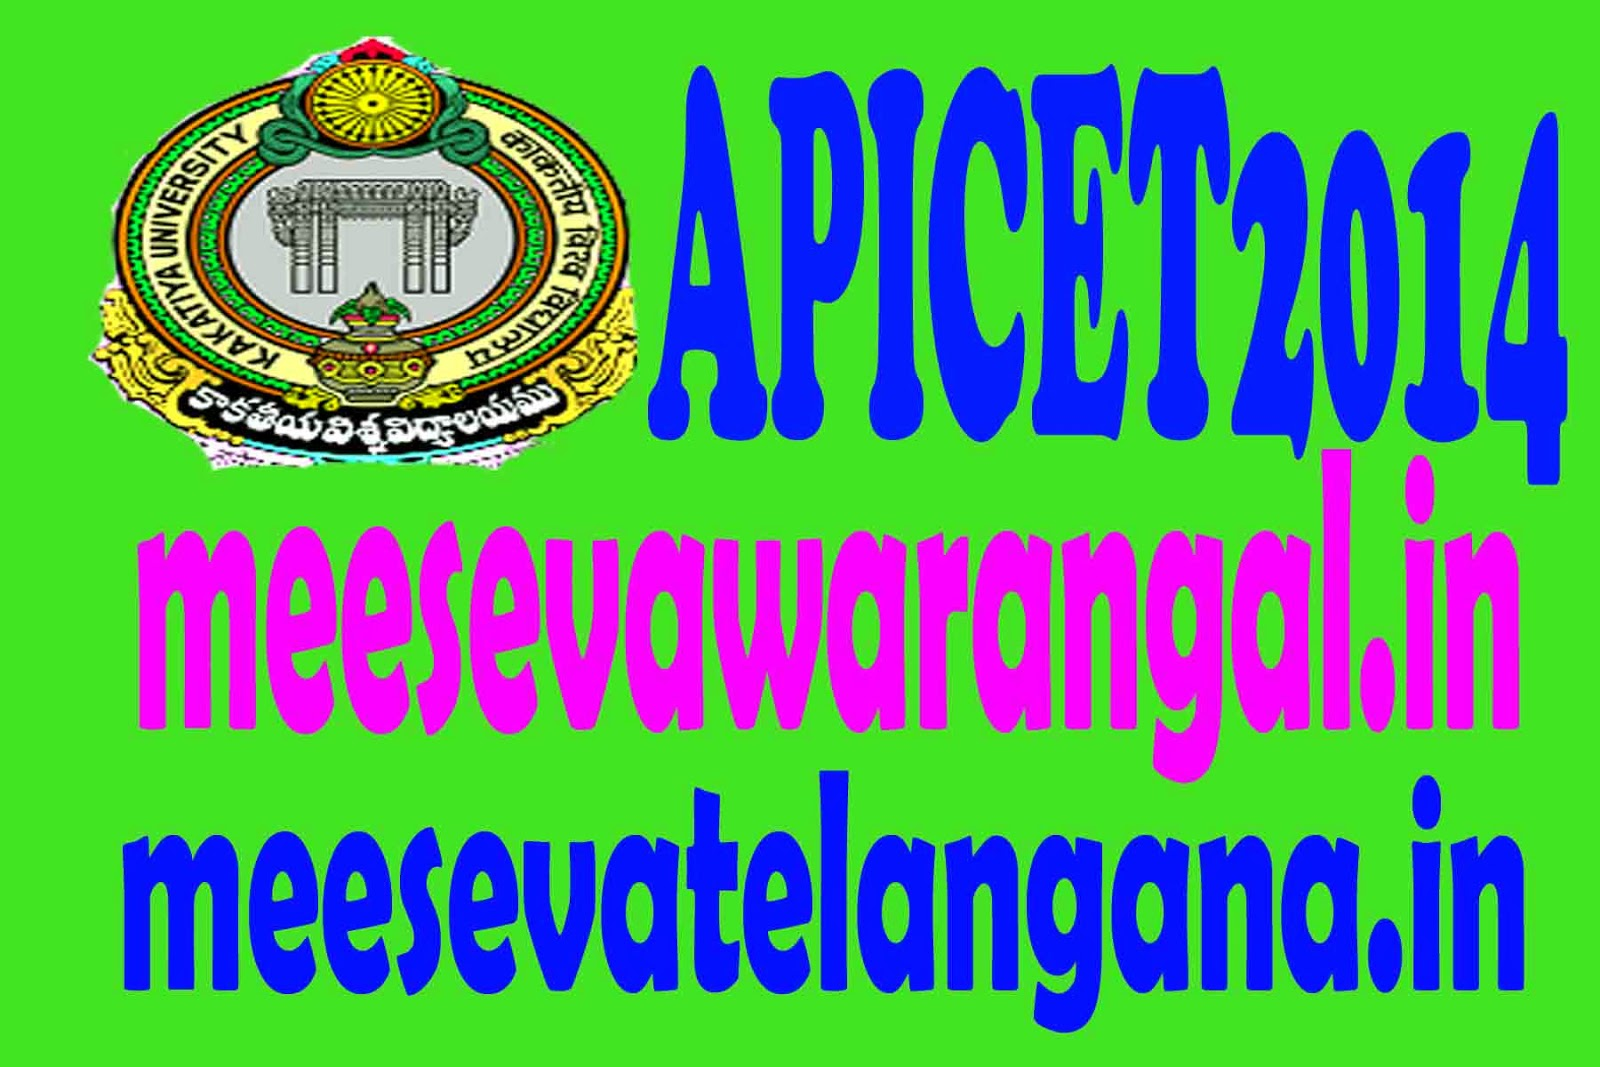 AP ICET 2016 Notification CET Examination 2016 Apply Online In Meeseva